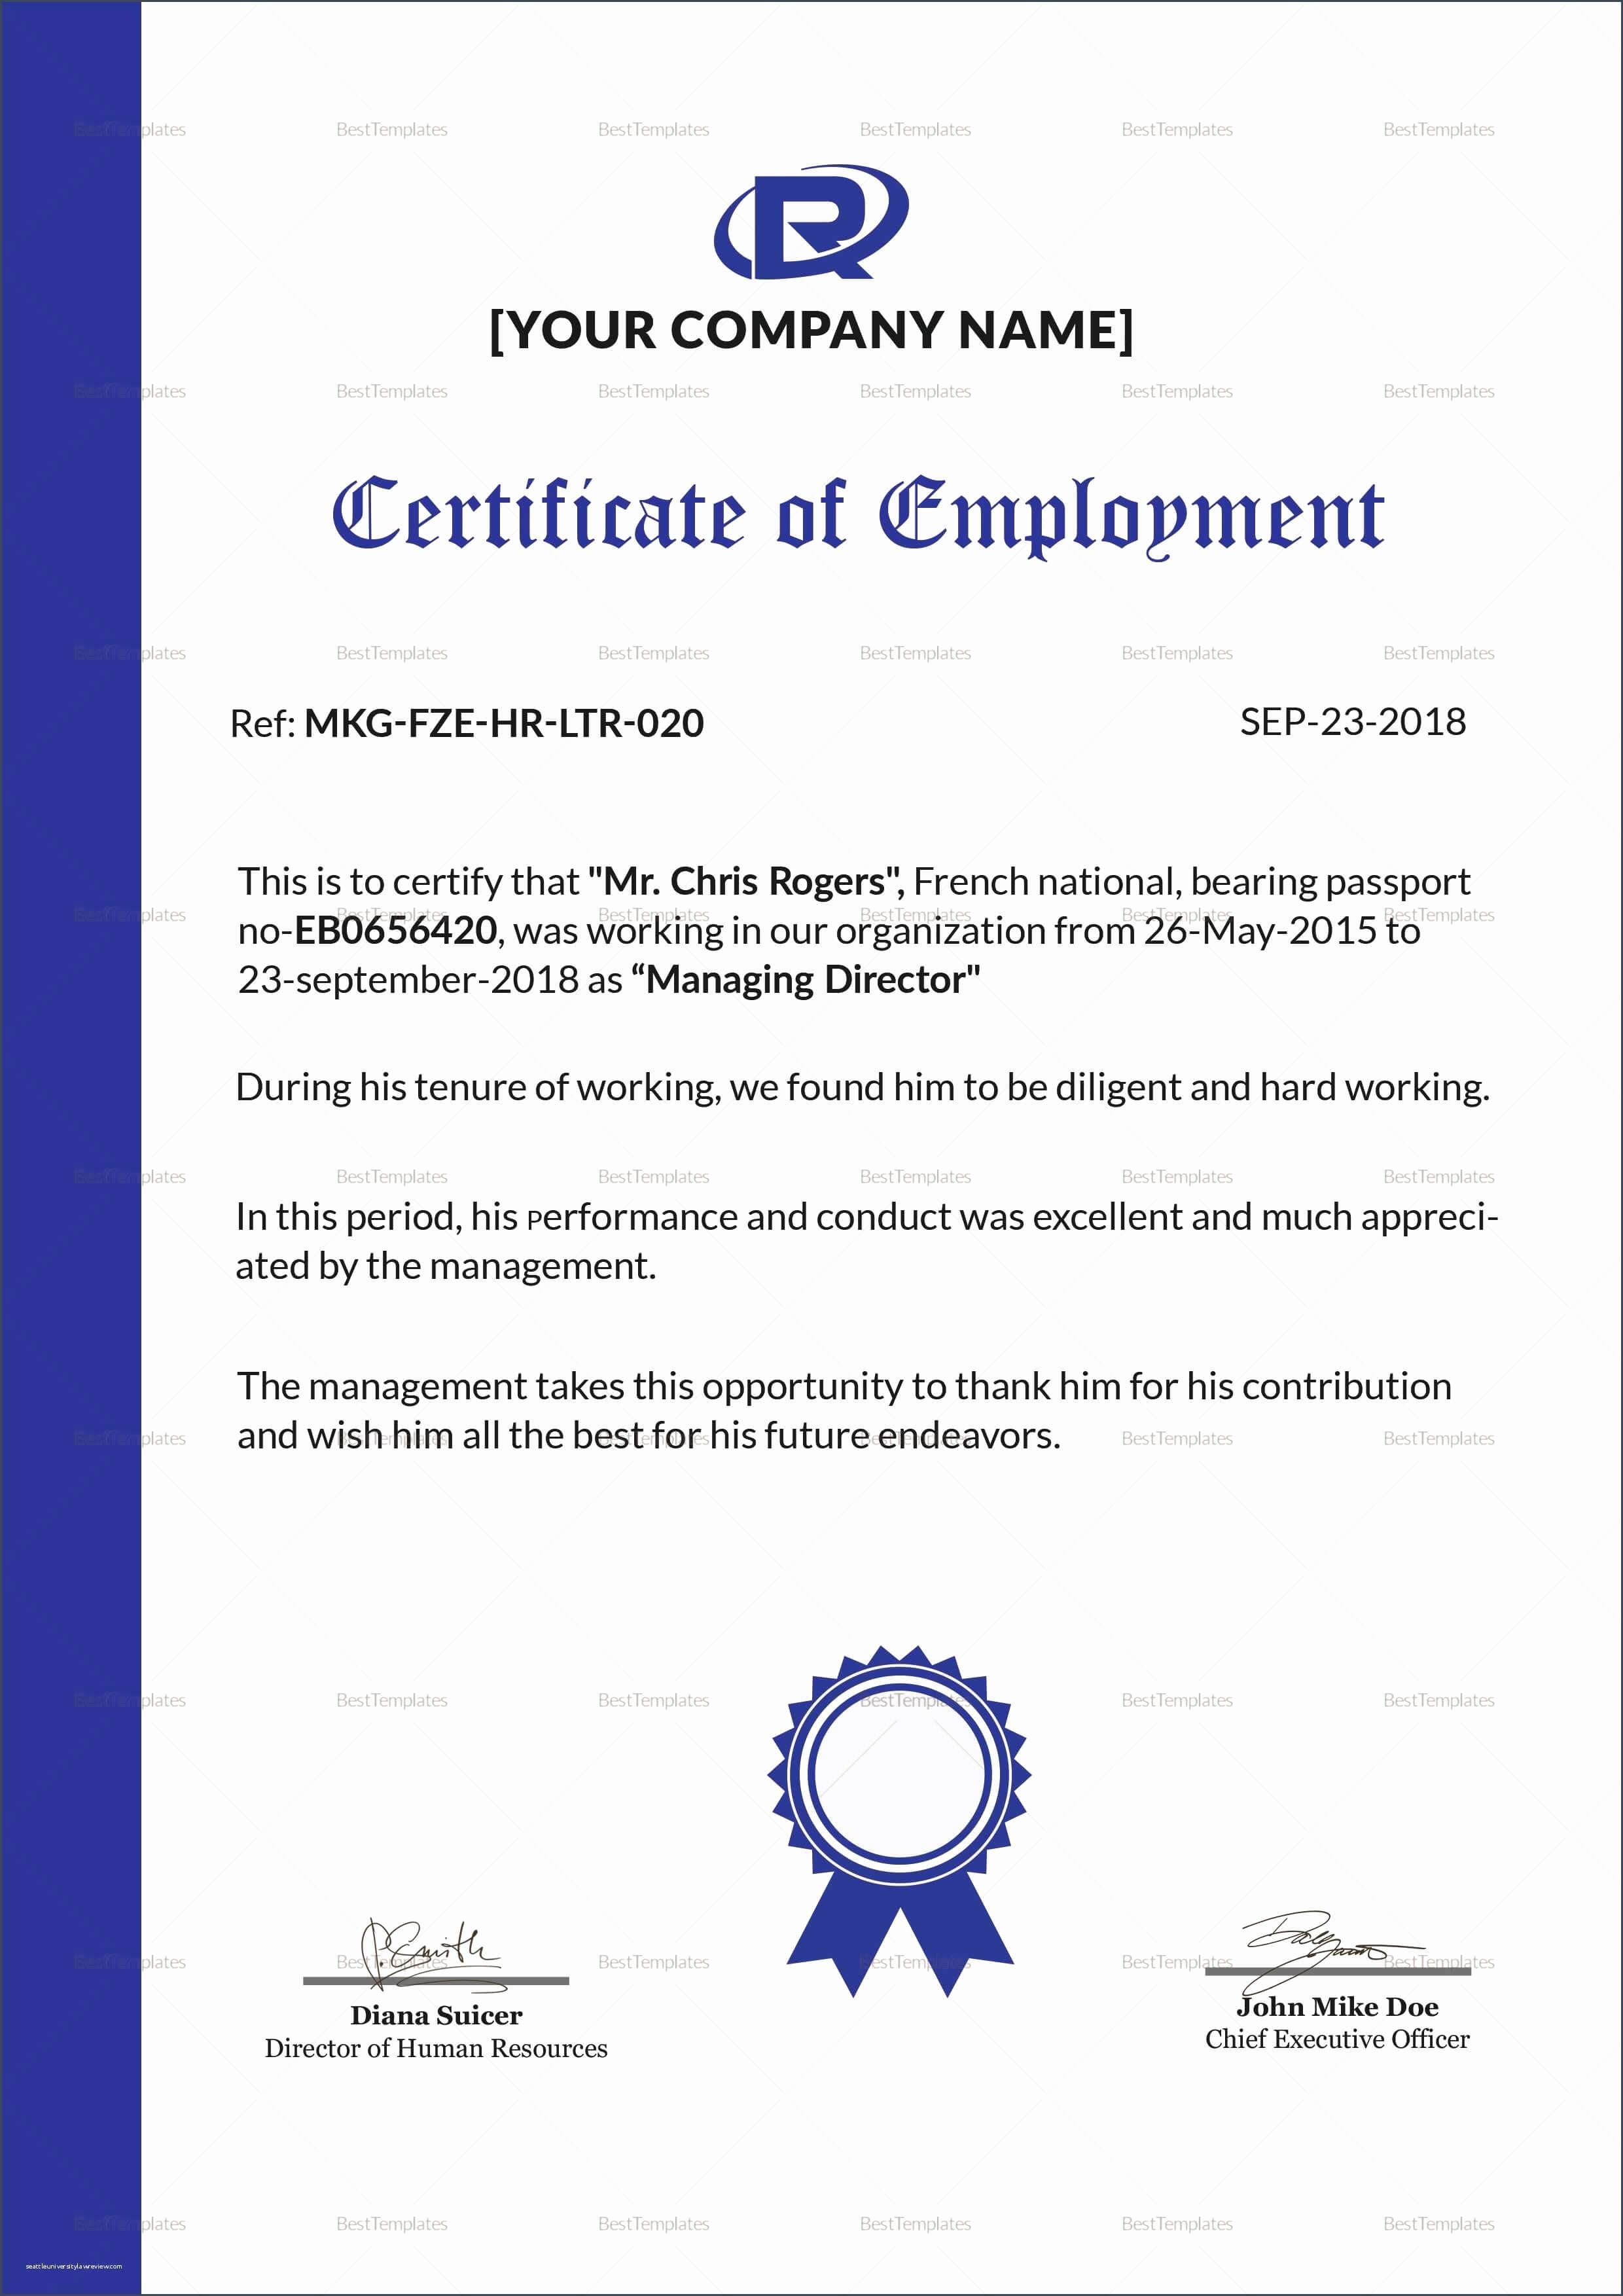 30 Sample Certificate Of Employment | Pryncepality with regard to Template Of Certificate Of Employment